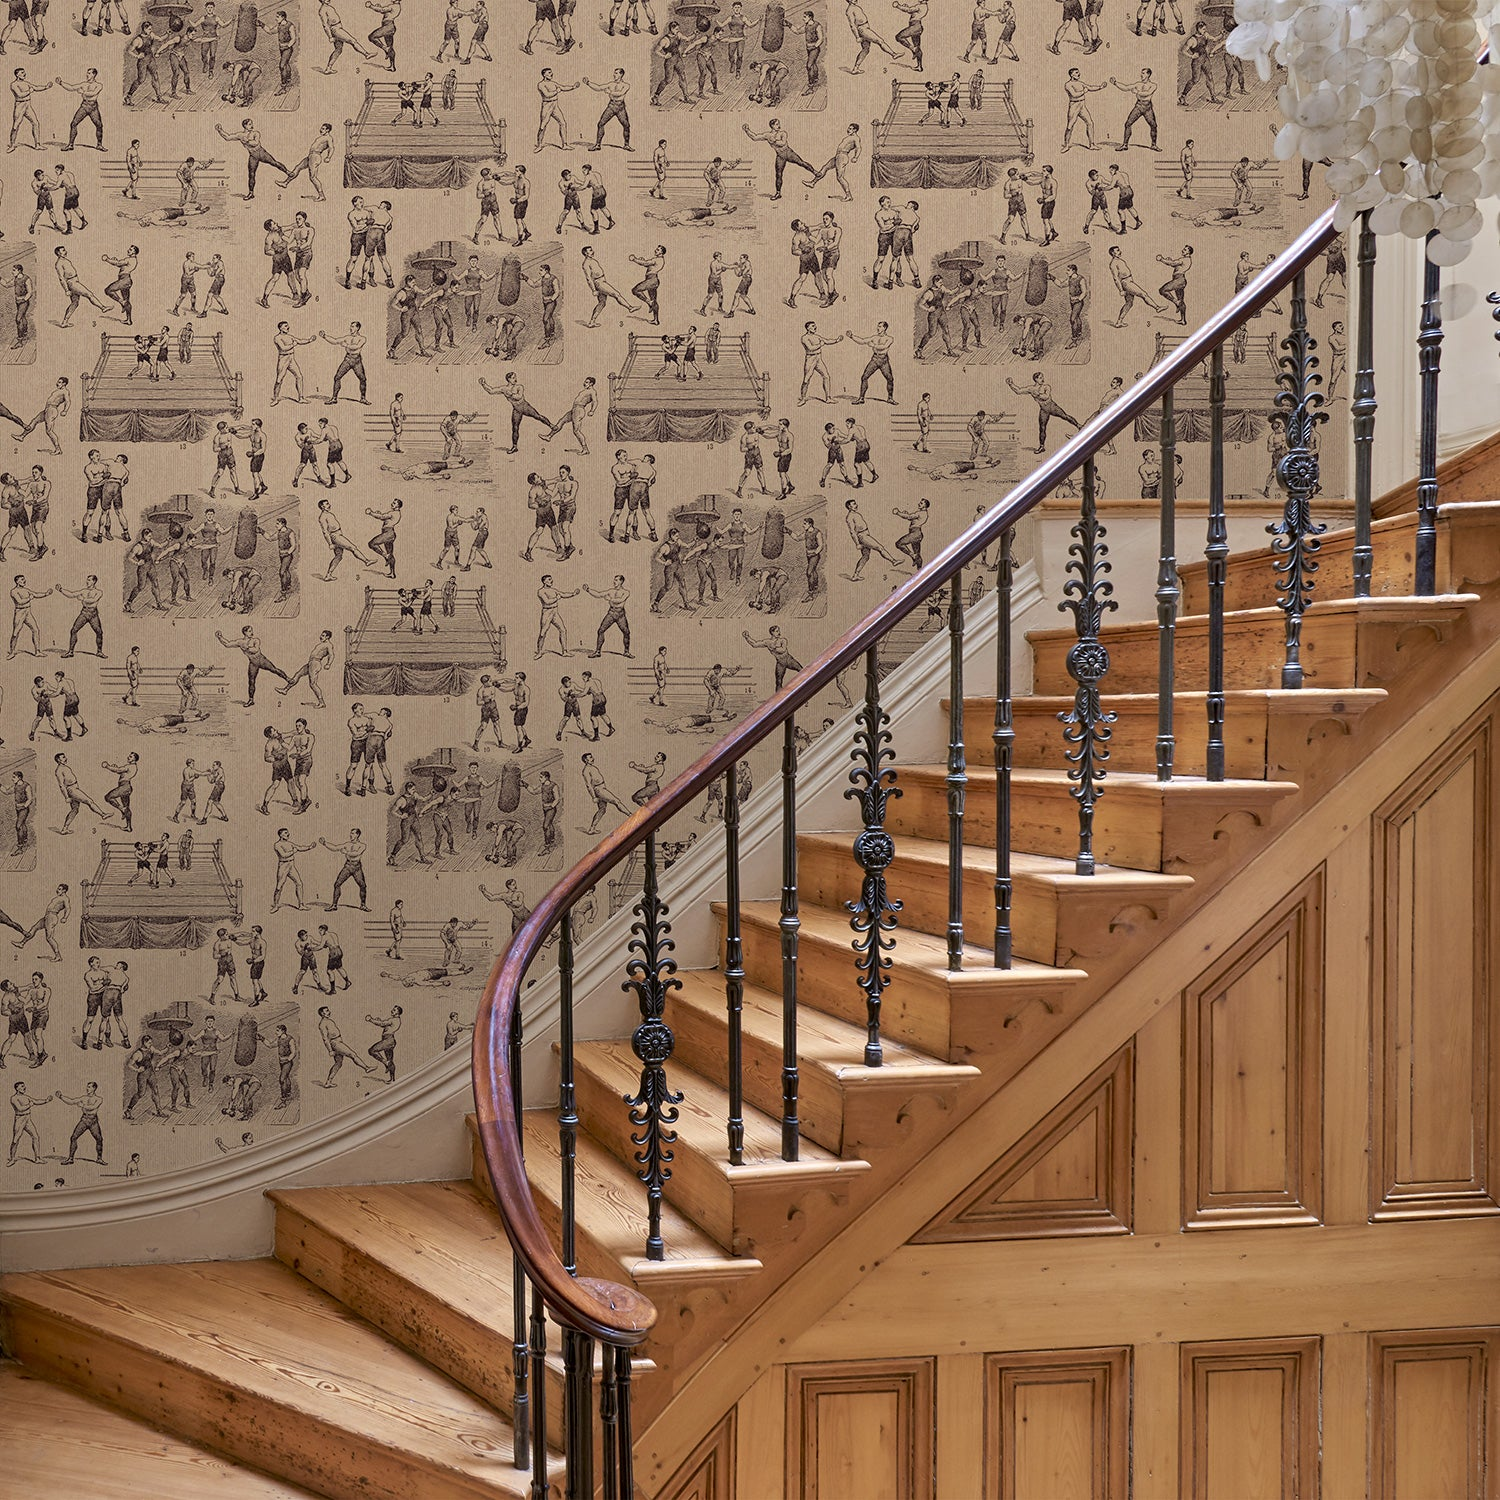 Hallway featuring a Wallpaper featuring a vintage illustrated boxing scene